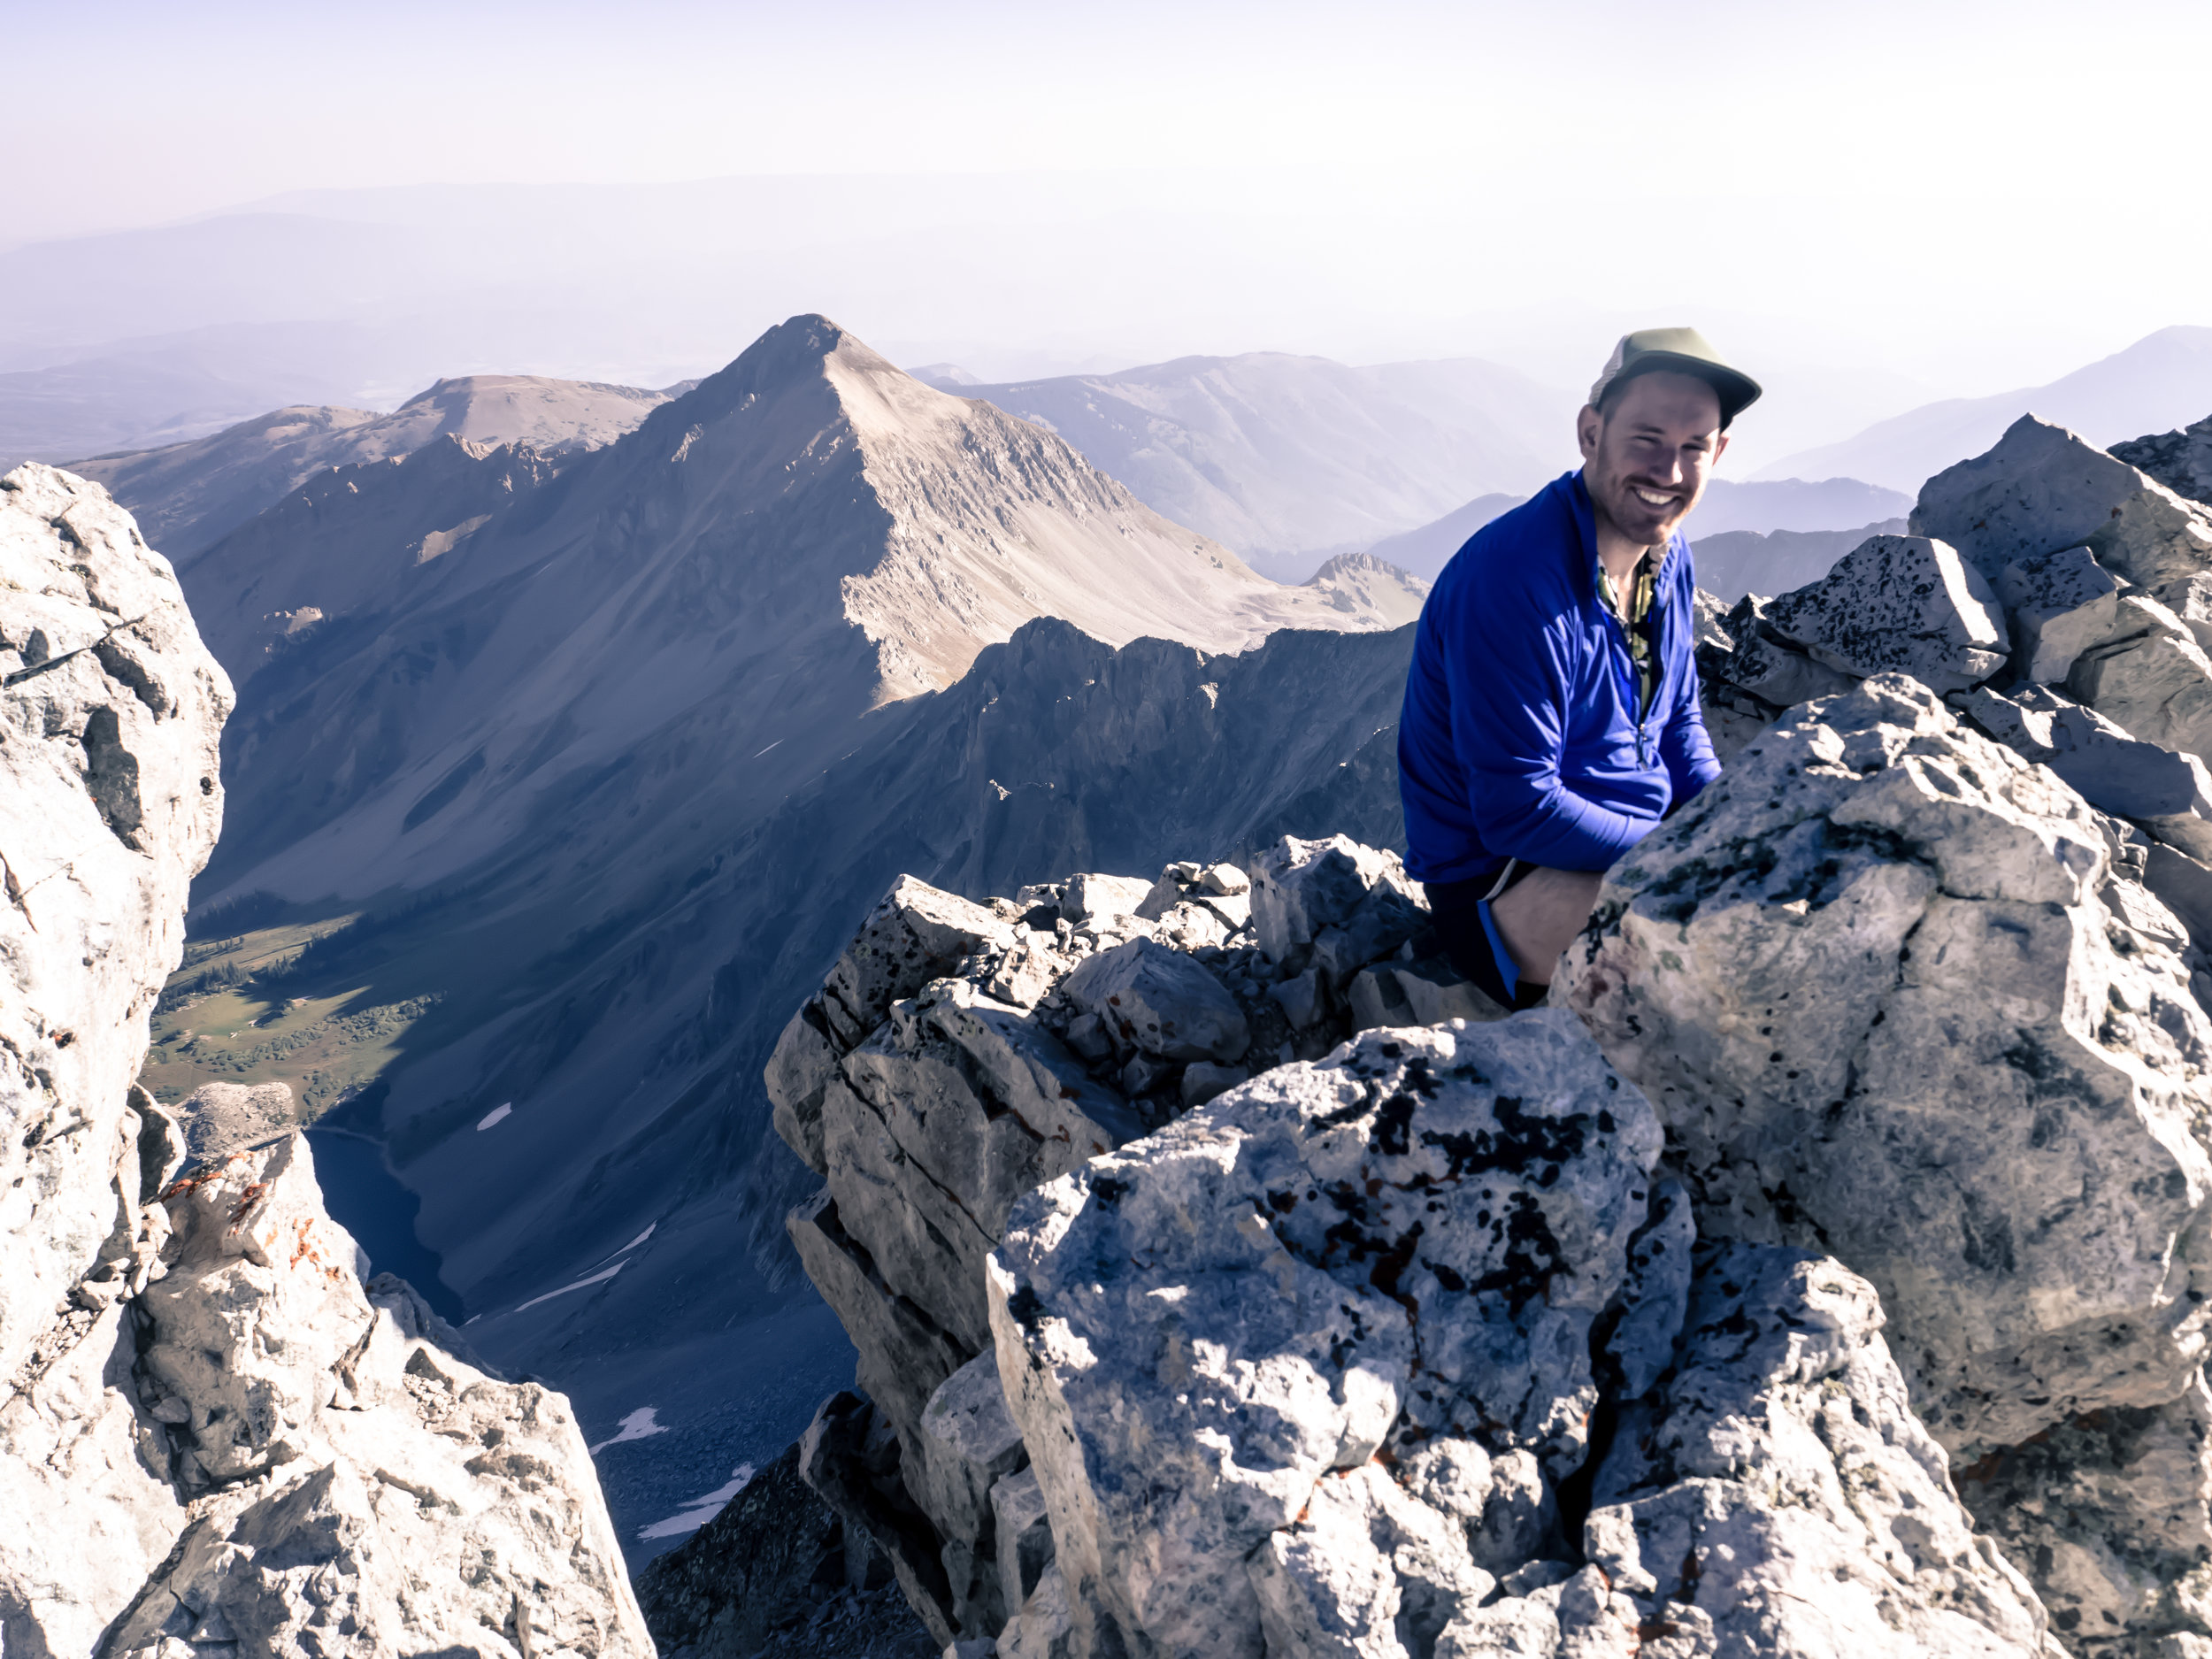 Feeling a little hazy, but happy on top of my first 14er!